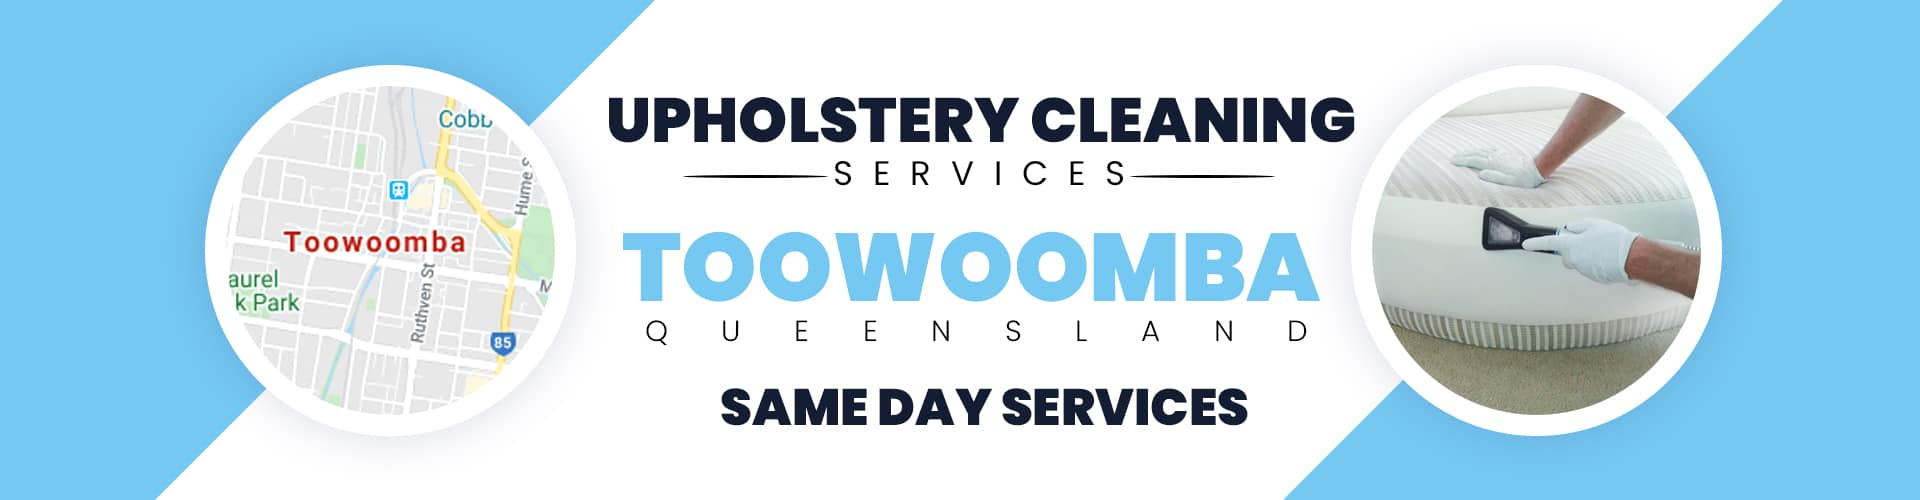 Upholstery Cleaning Toowoomba